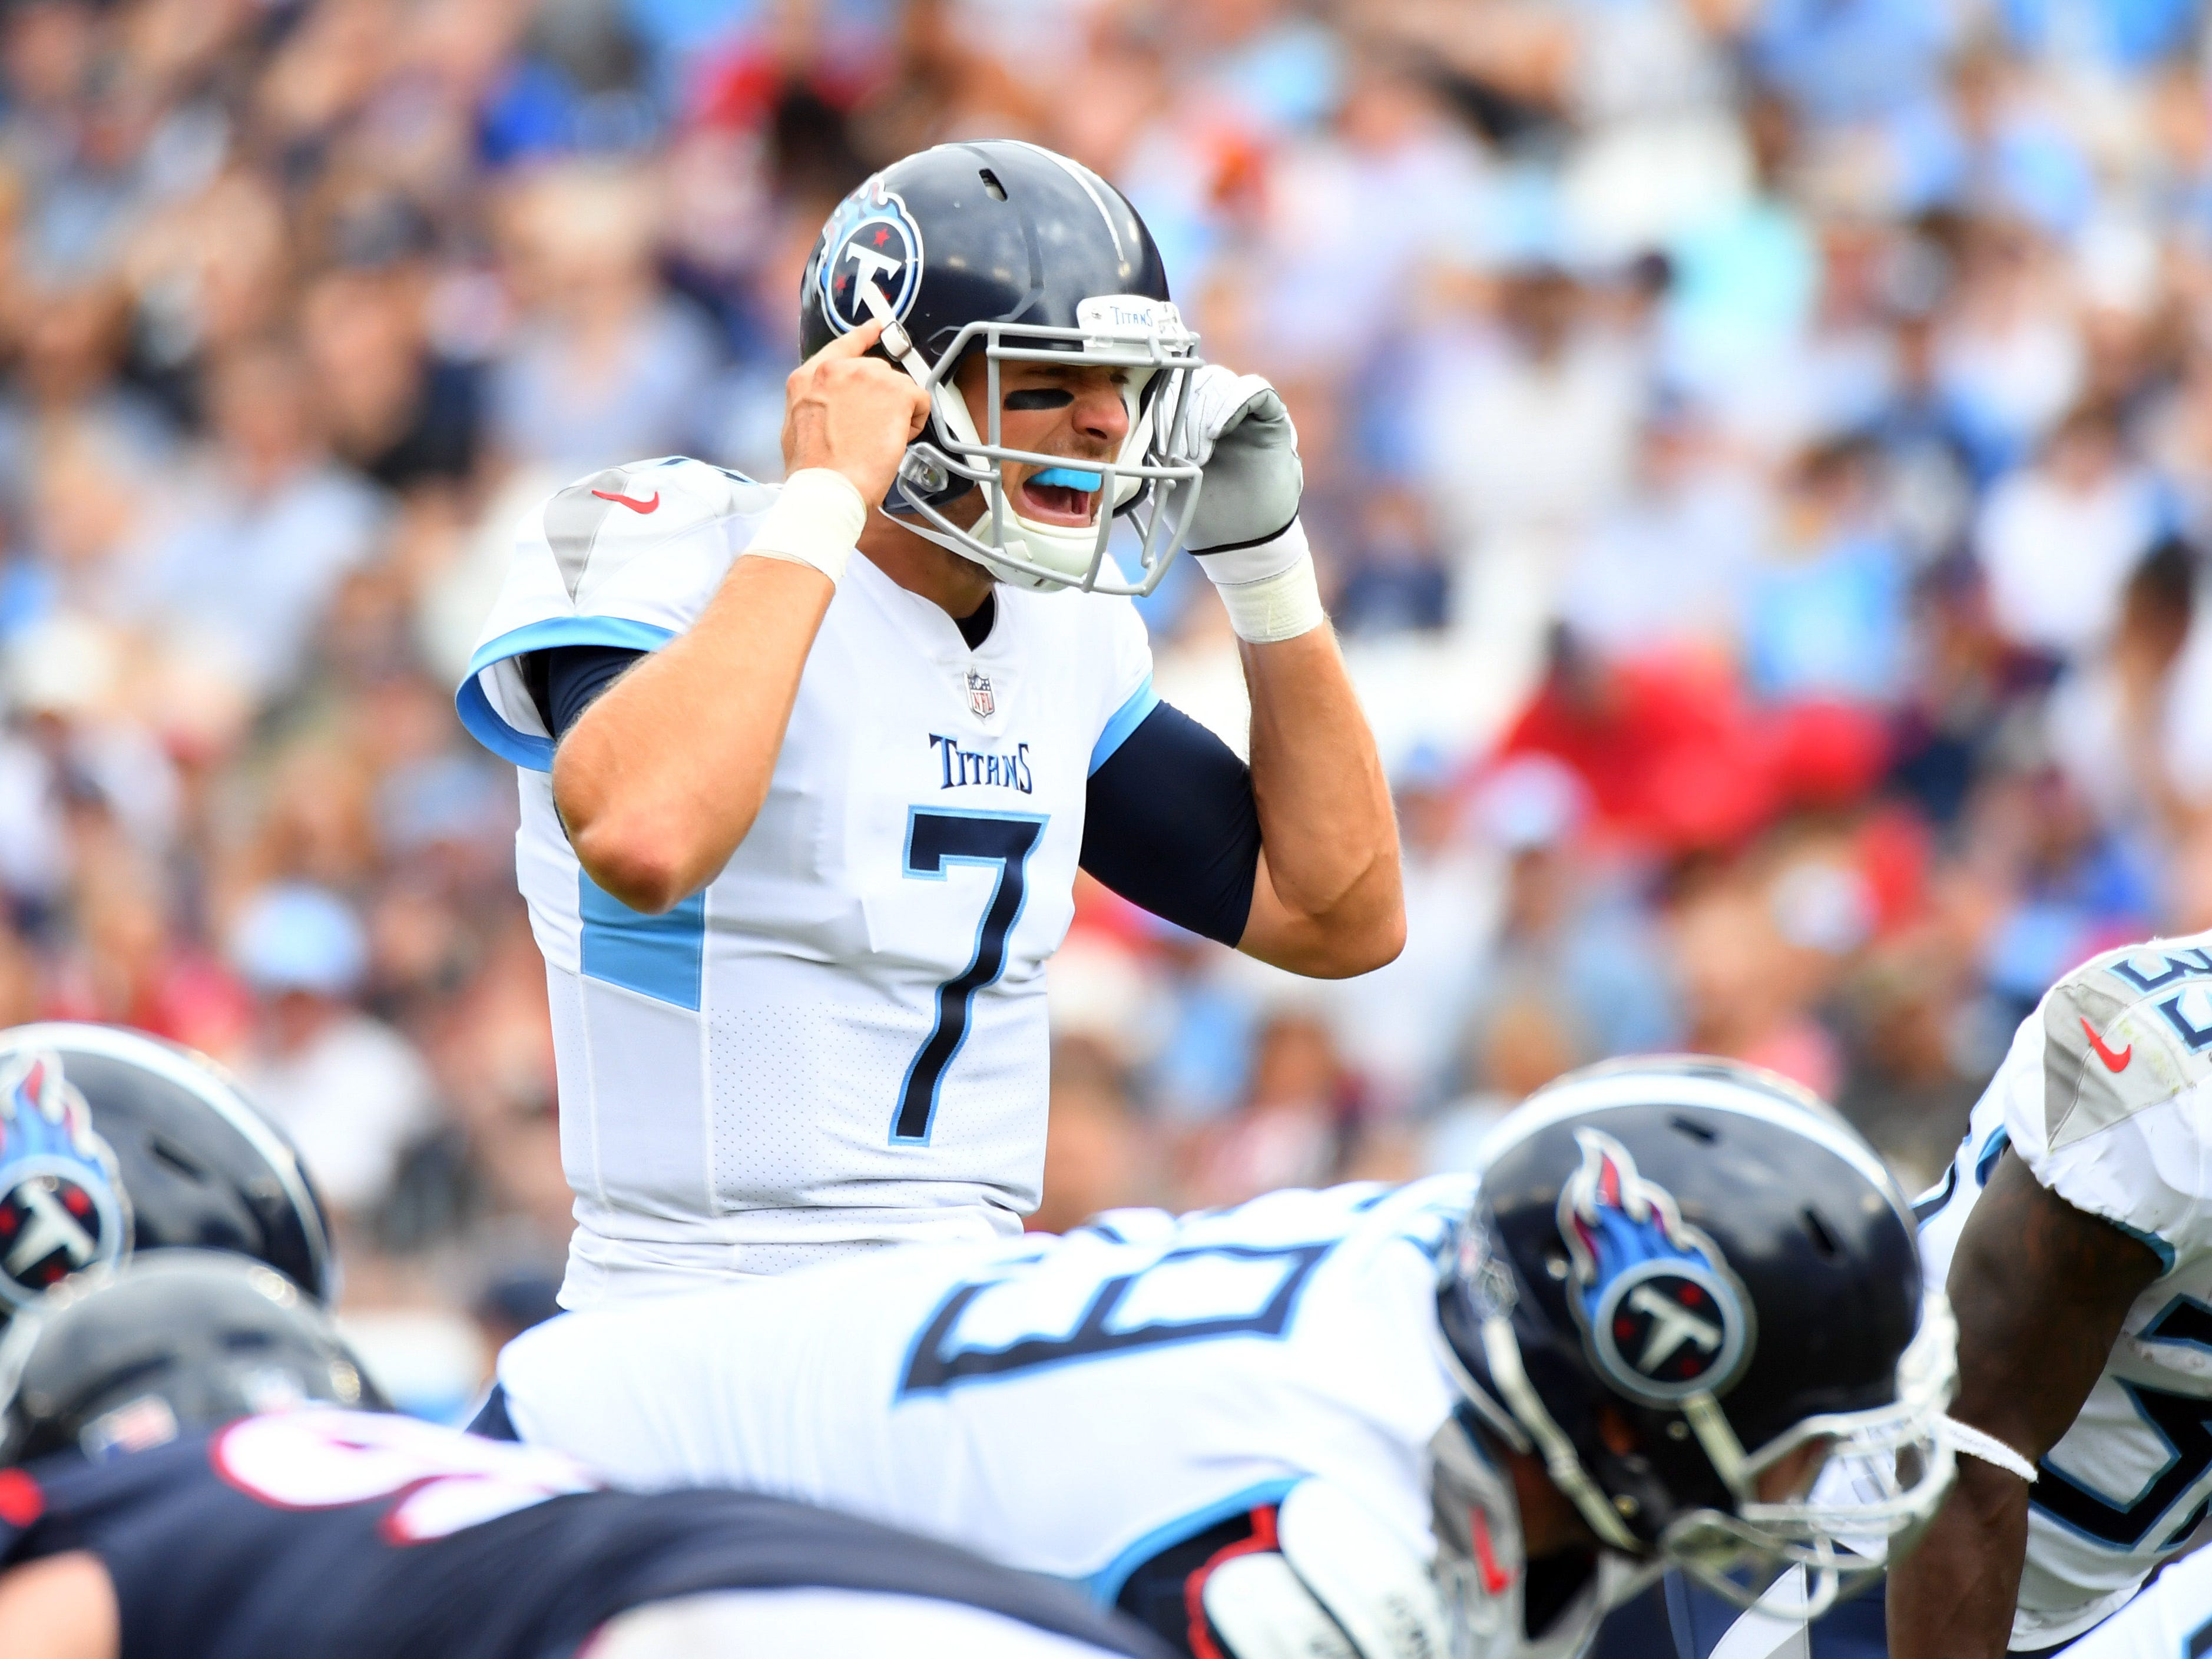 20. Titans (19): Don't look now — especially you, @BortlesFacts — but Blaine Gabbert on pace to go 15-0 as starter using Mike Vrabel's smoke and mirrors.